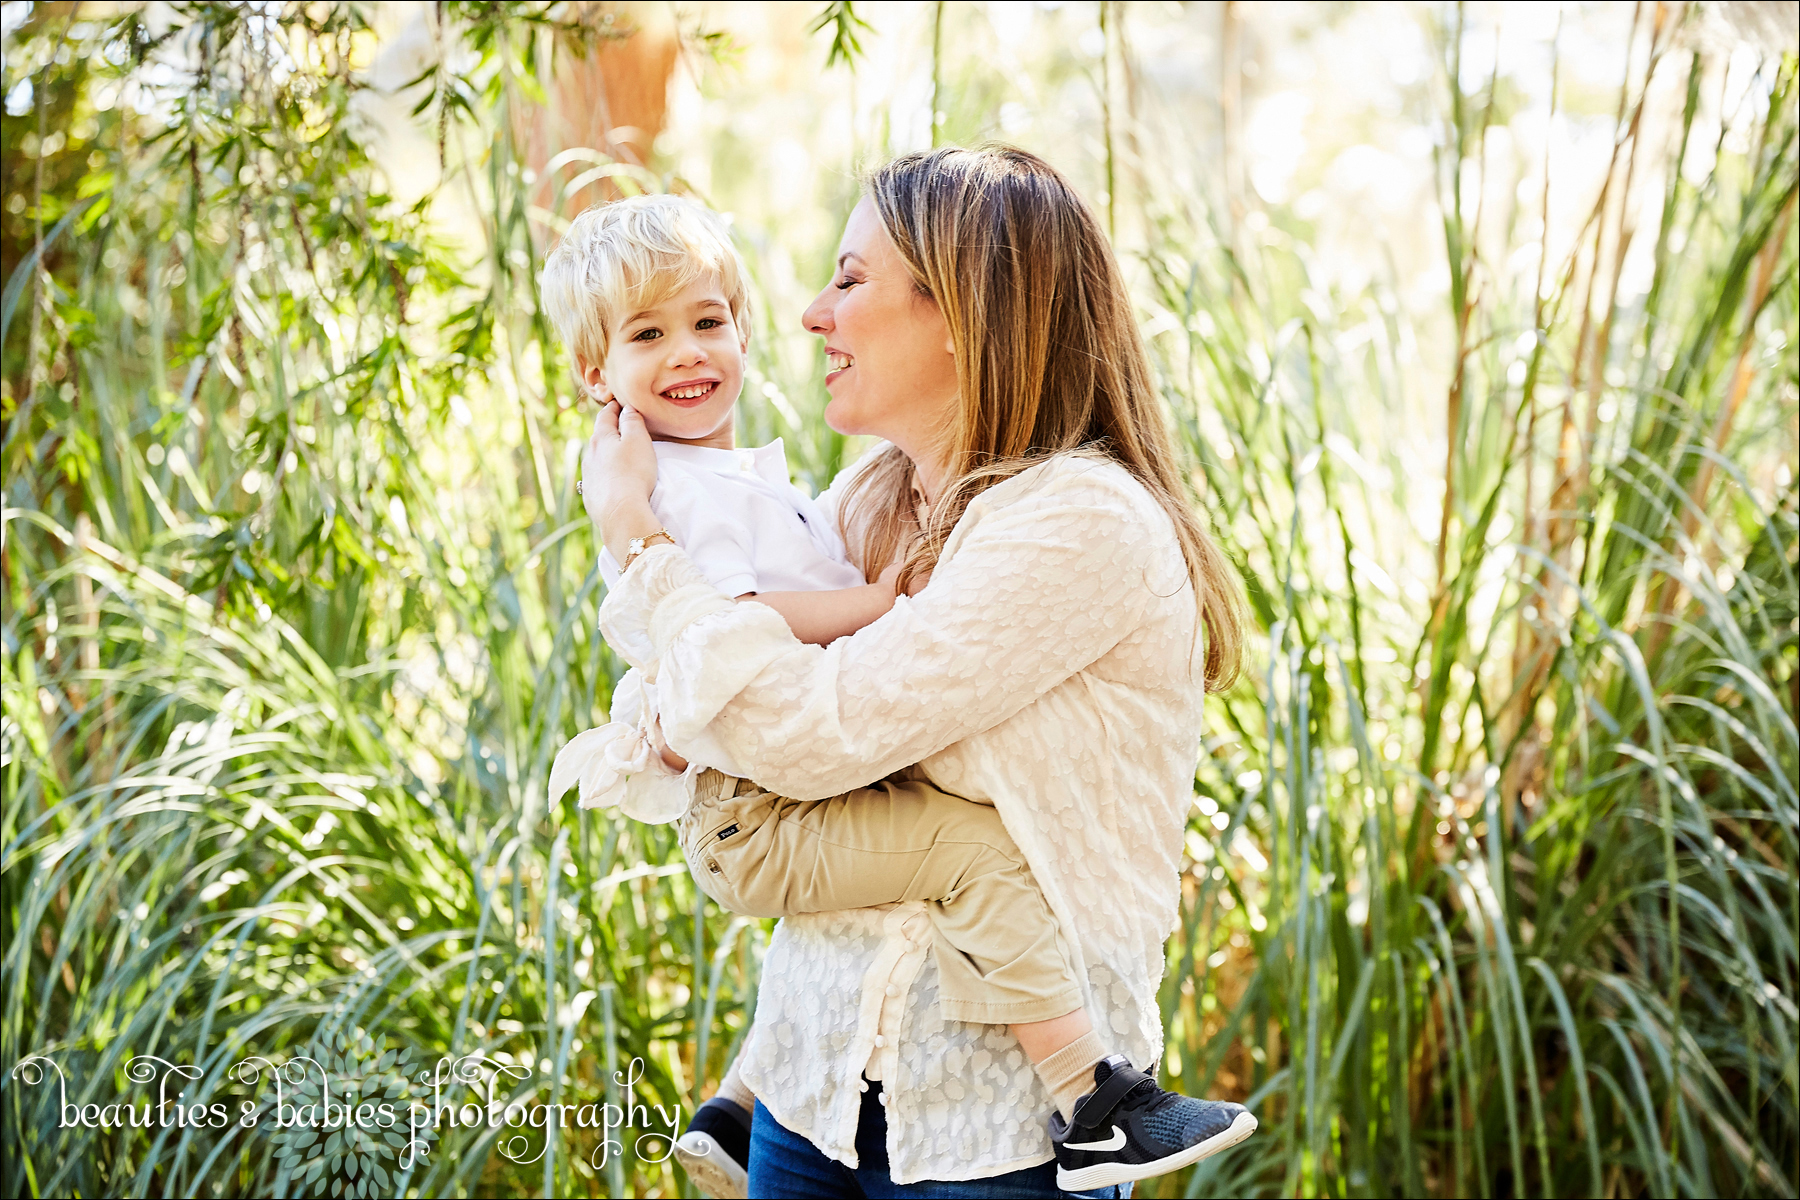 Family Holiday card photos Los Angeles family photography outdoors natural light